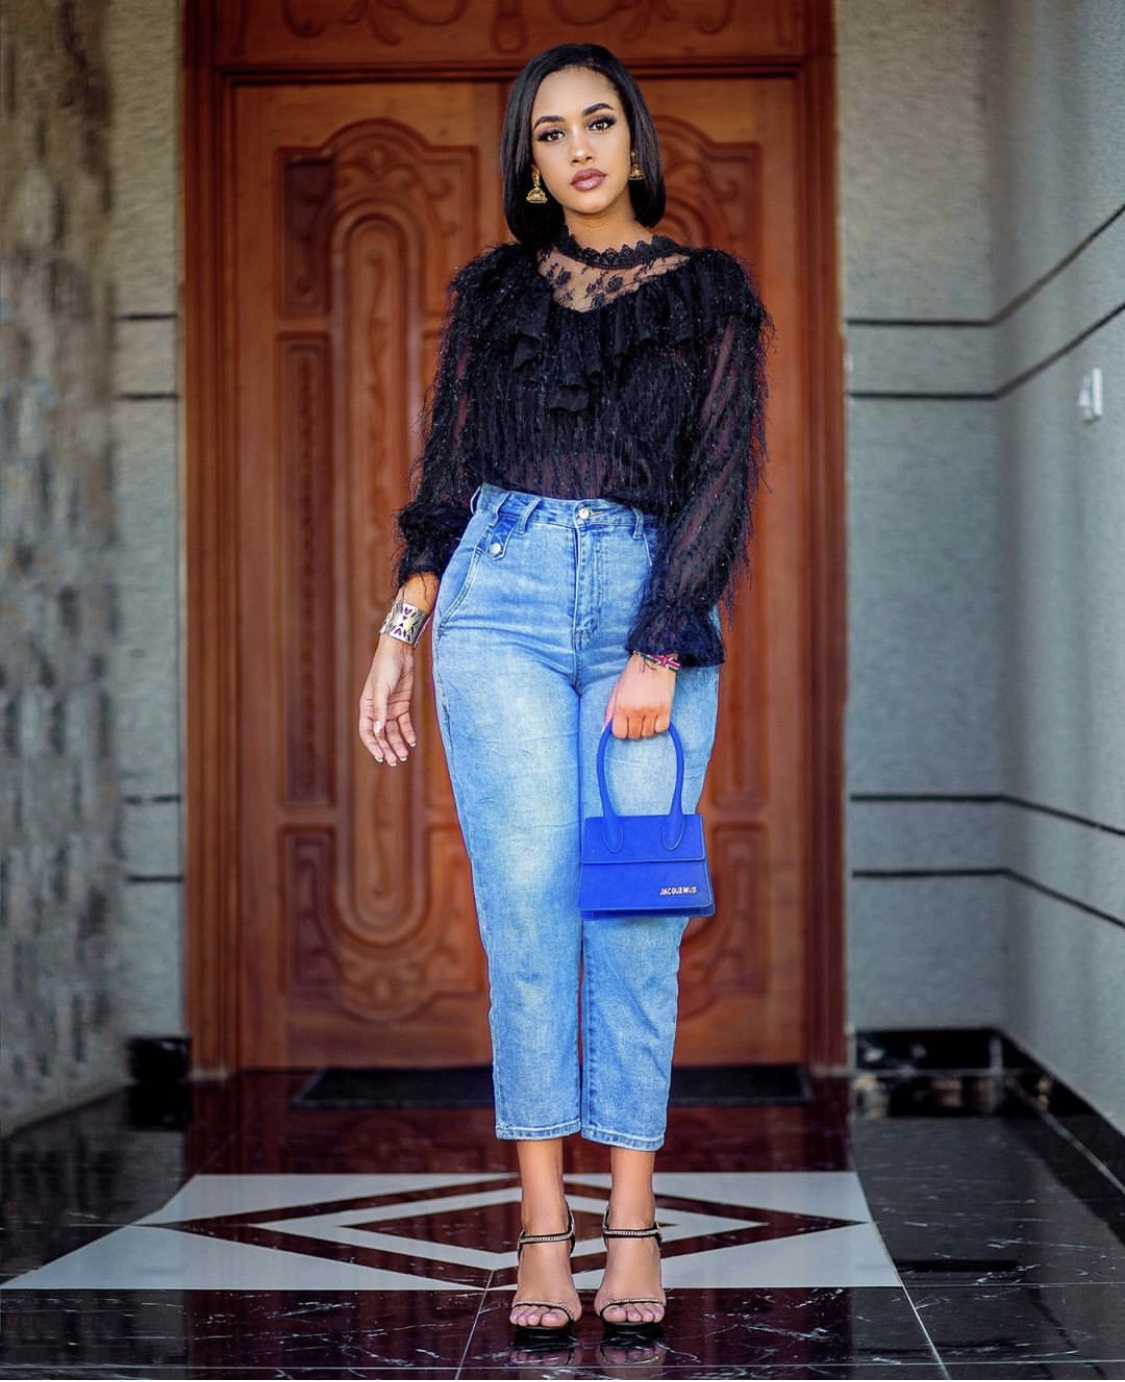 Yummy Mummy! Tanasha Donna Steps Out Looking Hotter Than